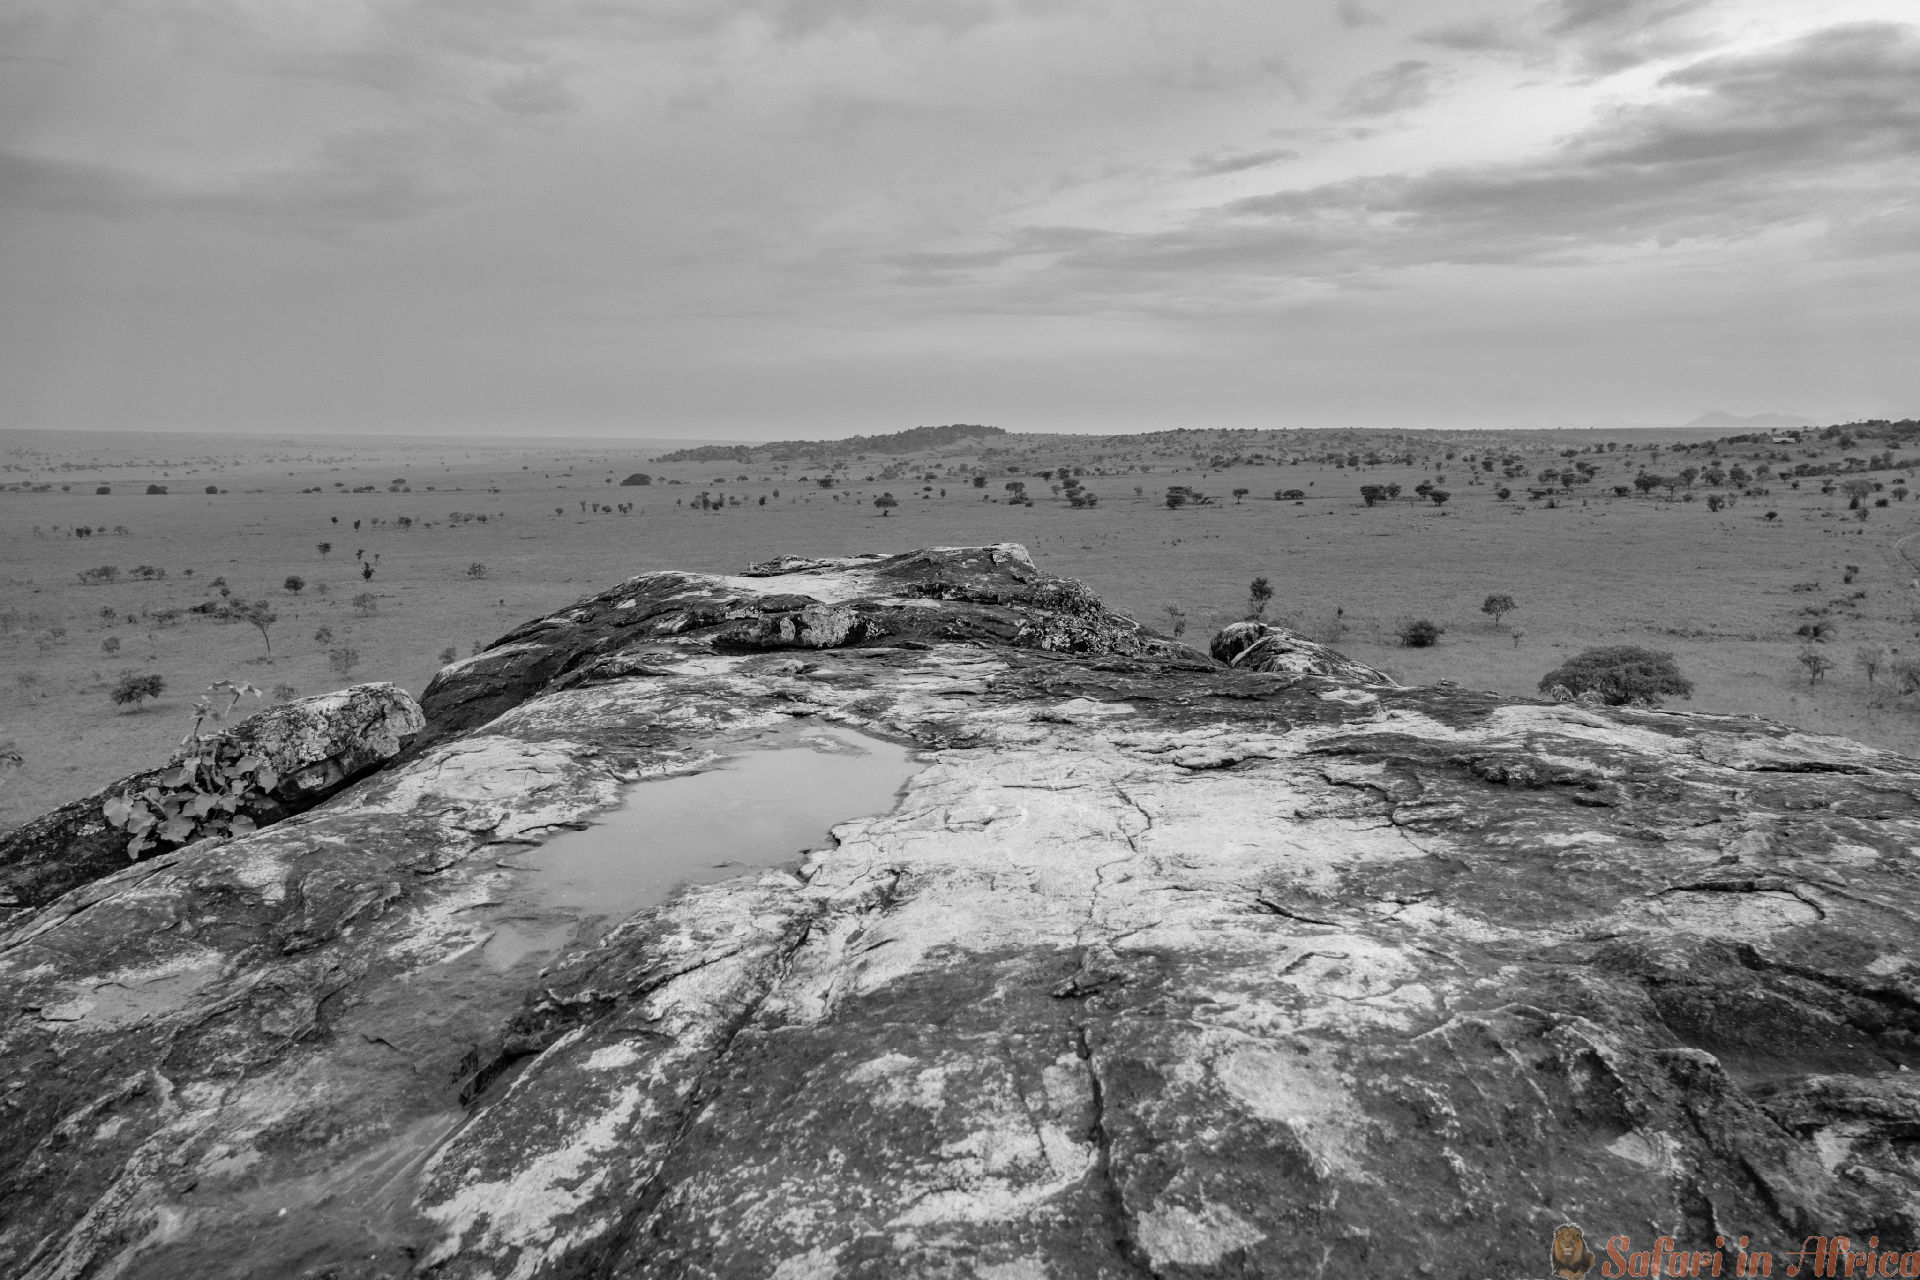 Wide Kidepo national park in Uganda B&W